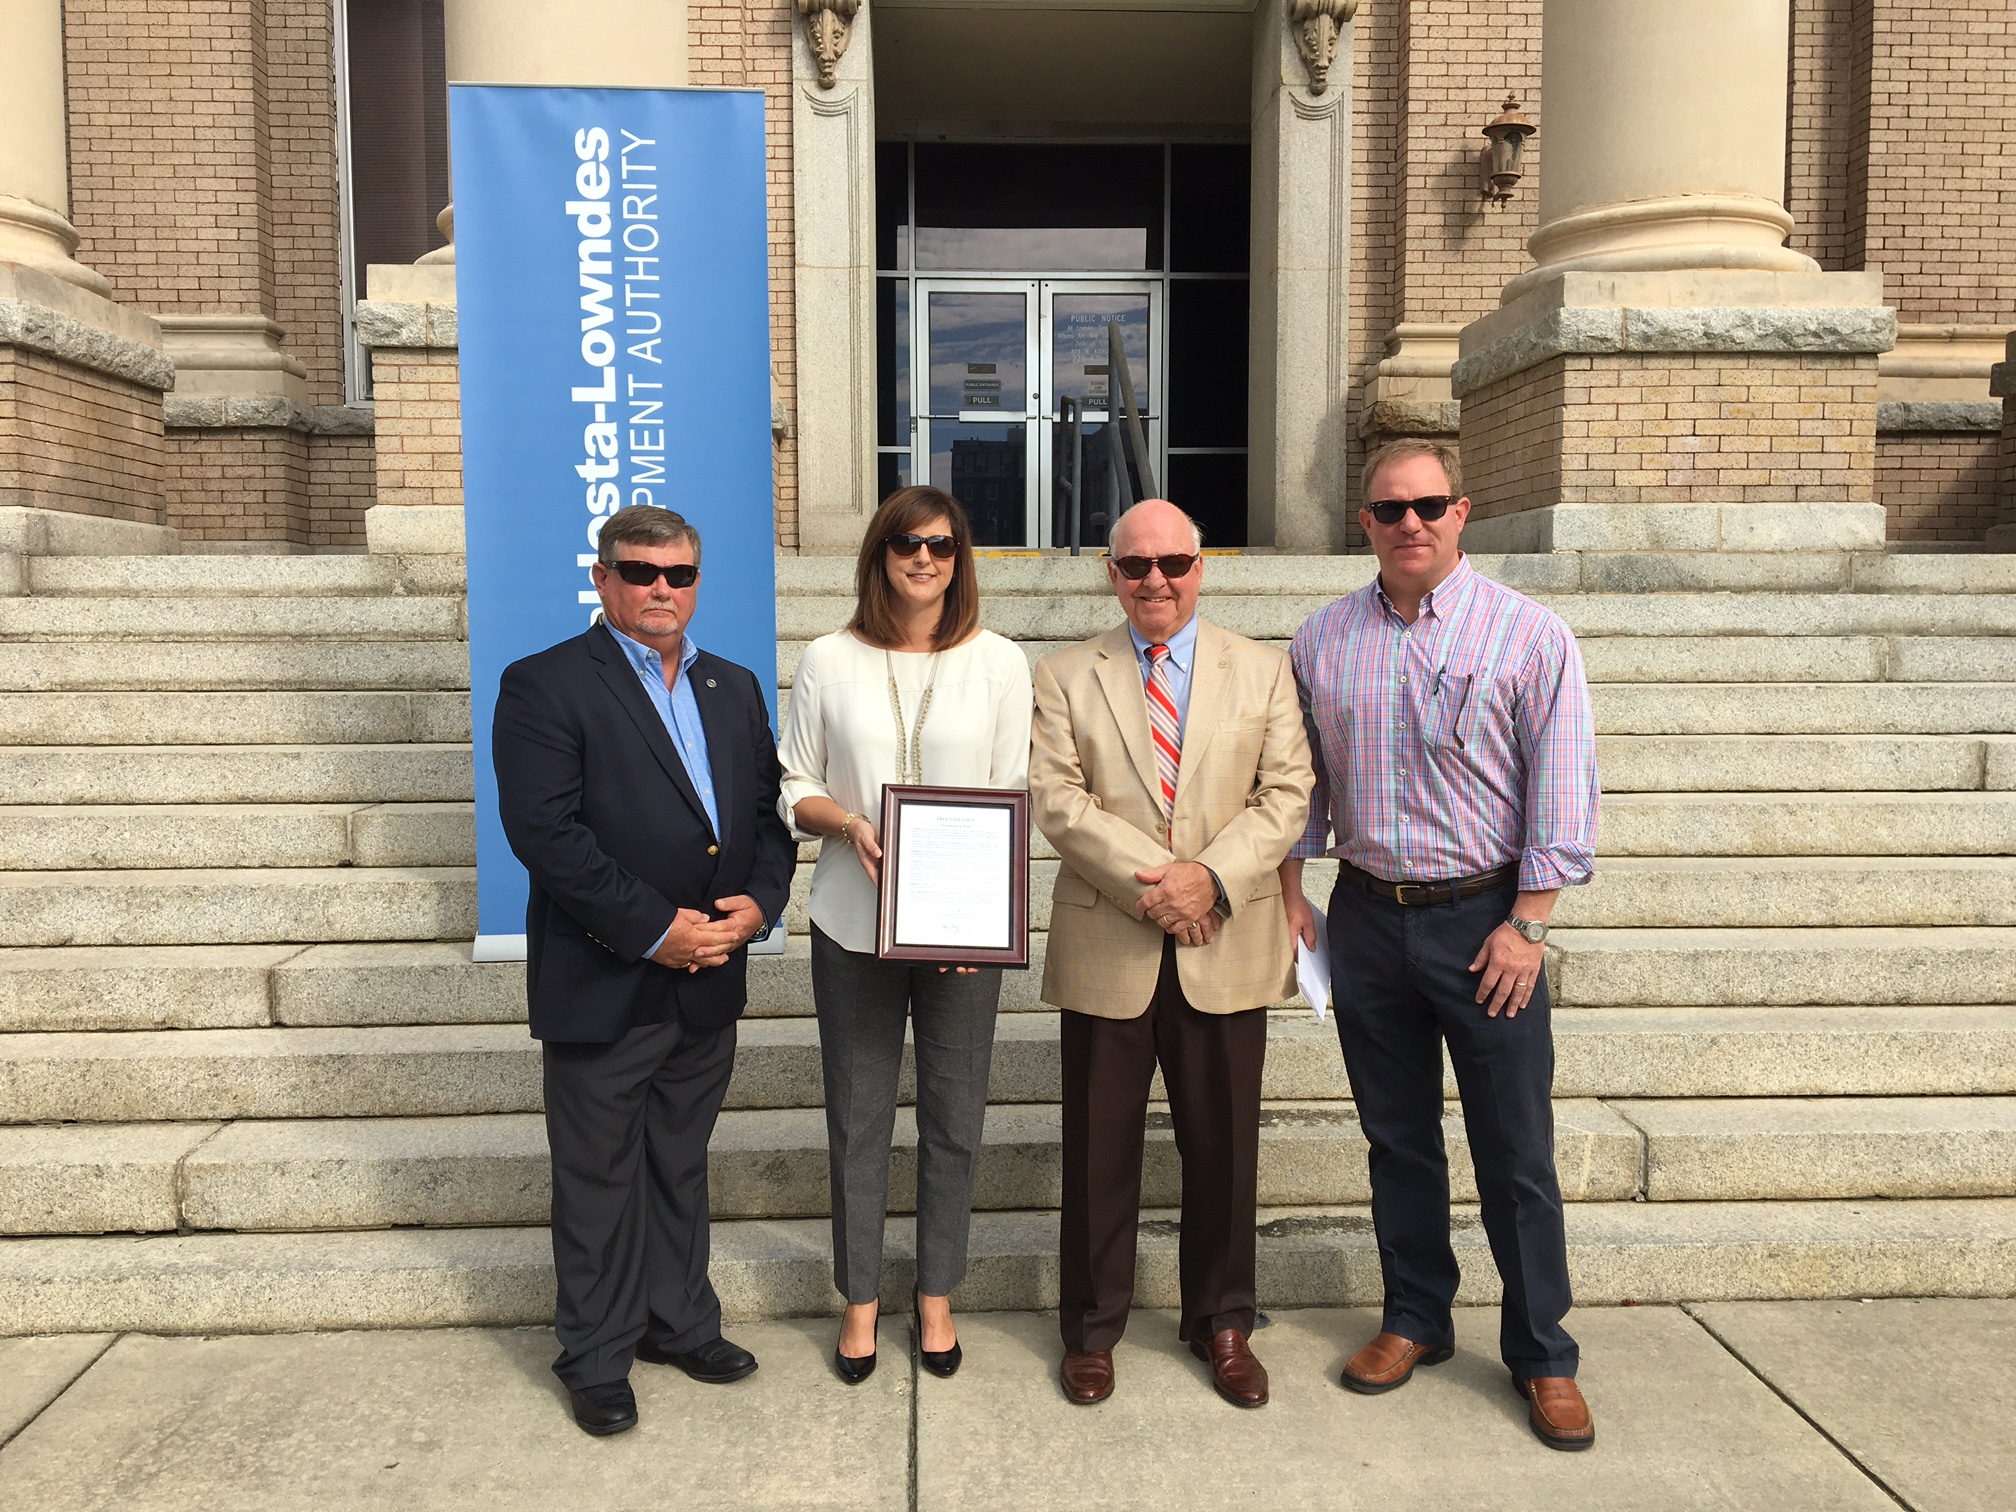 Valdosta-Lowndes Development Authority Recognizes National Manufacturing Day